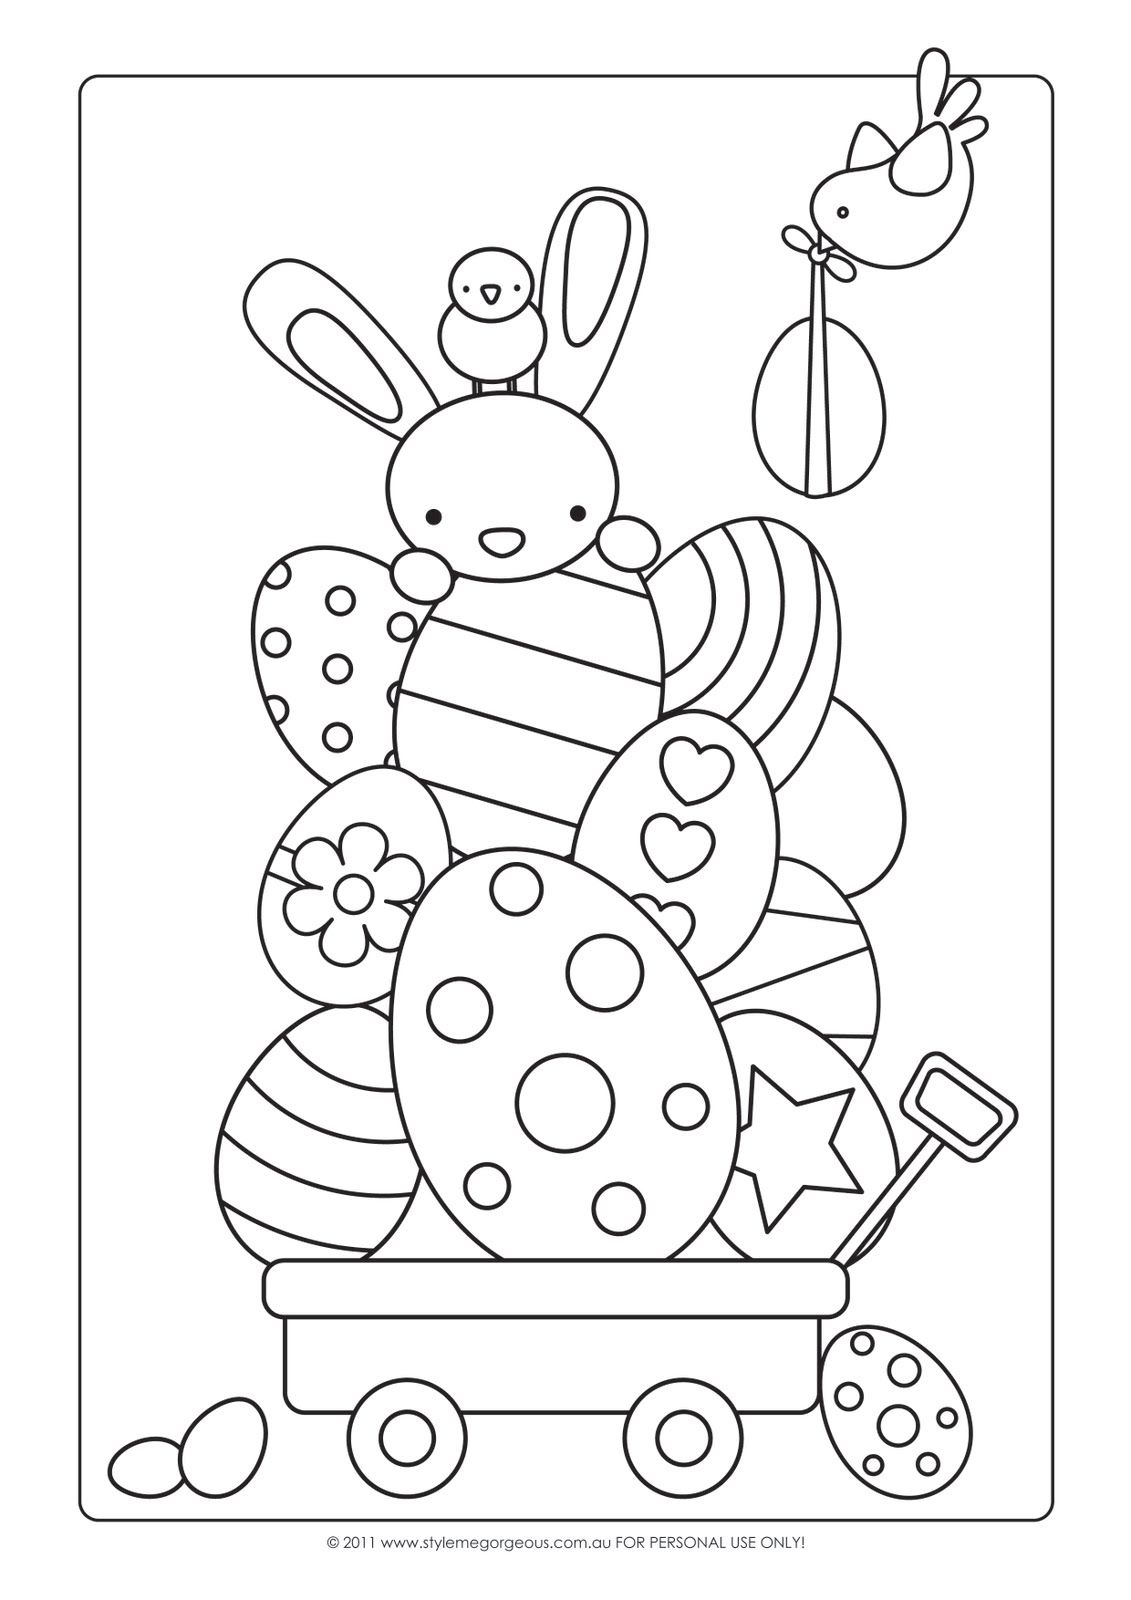 Style Me Gorgeous Free Easter Colour In Page Easter Colors Easter Bunny Colouring Easter Coloring Pages